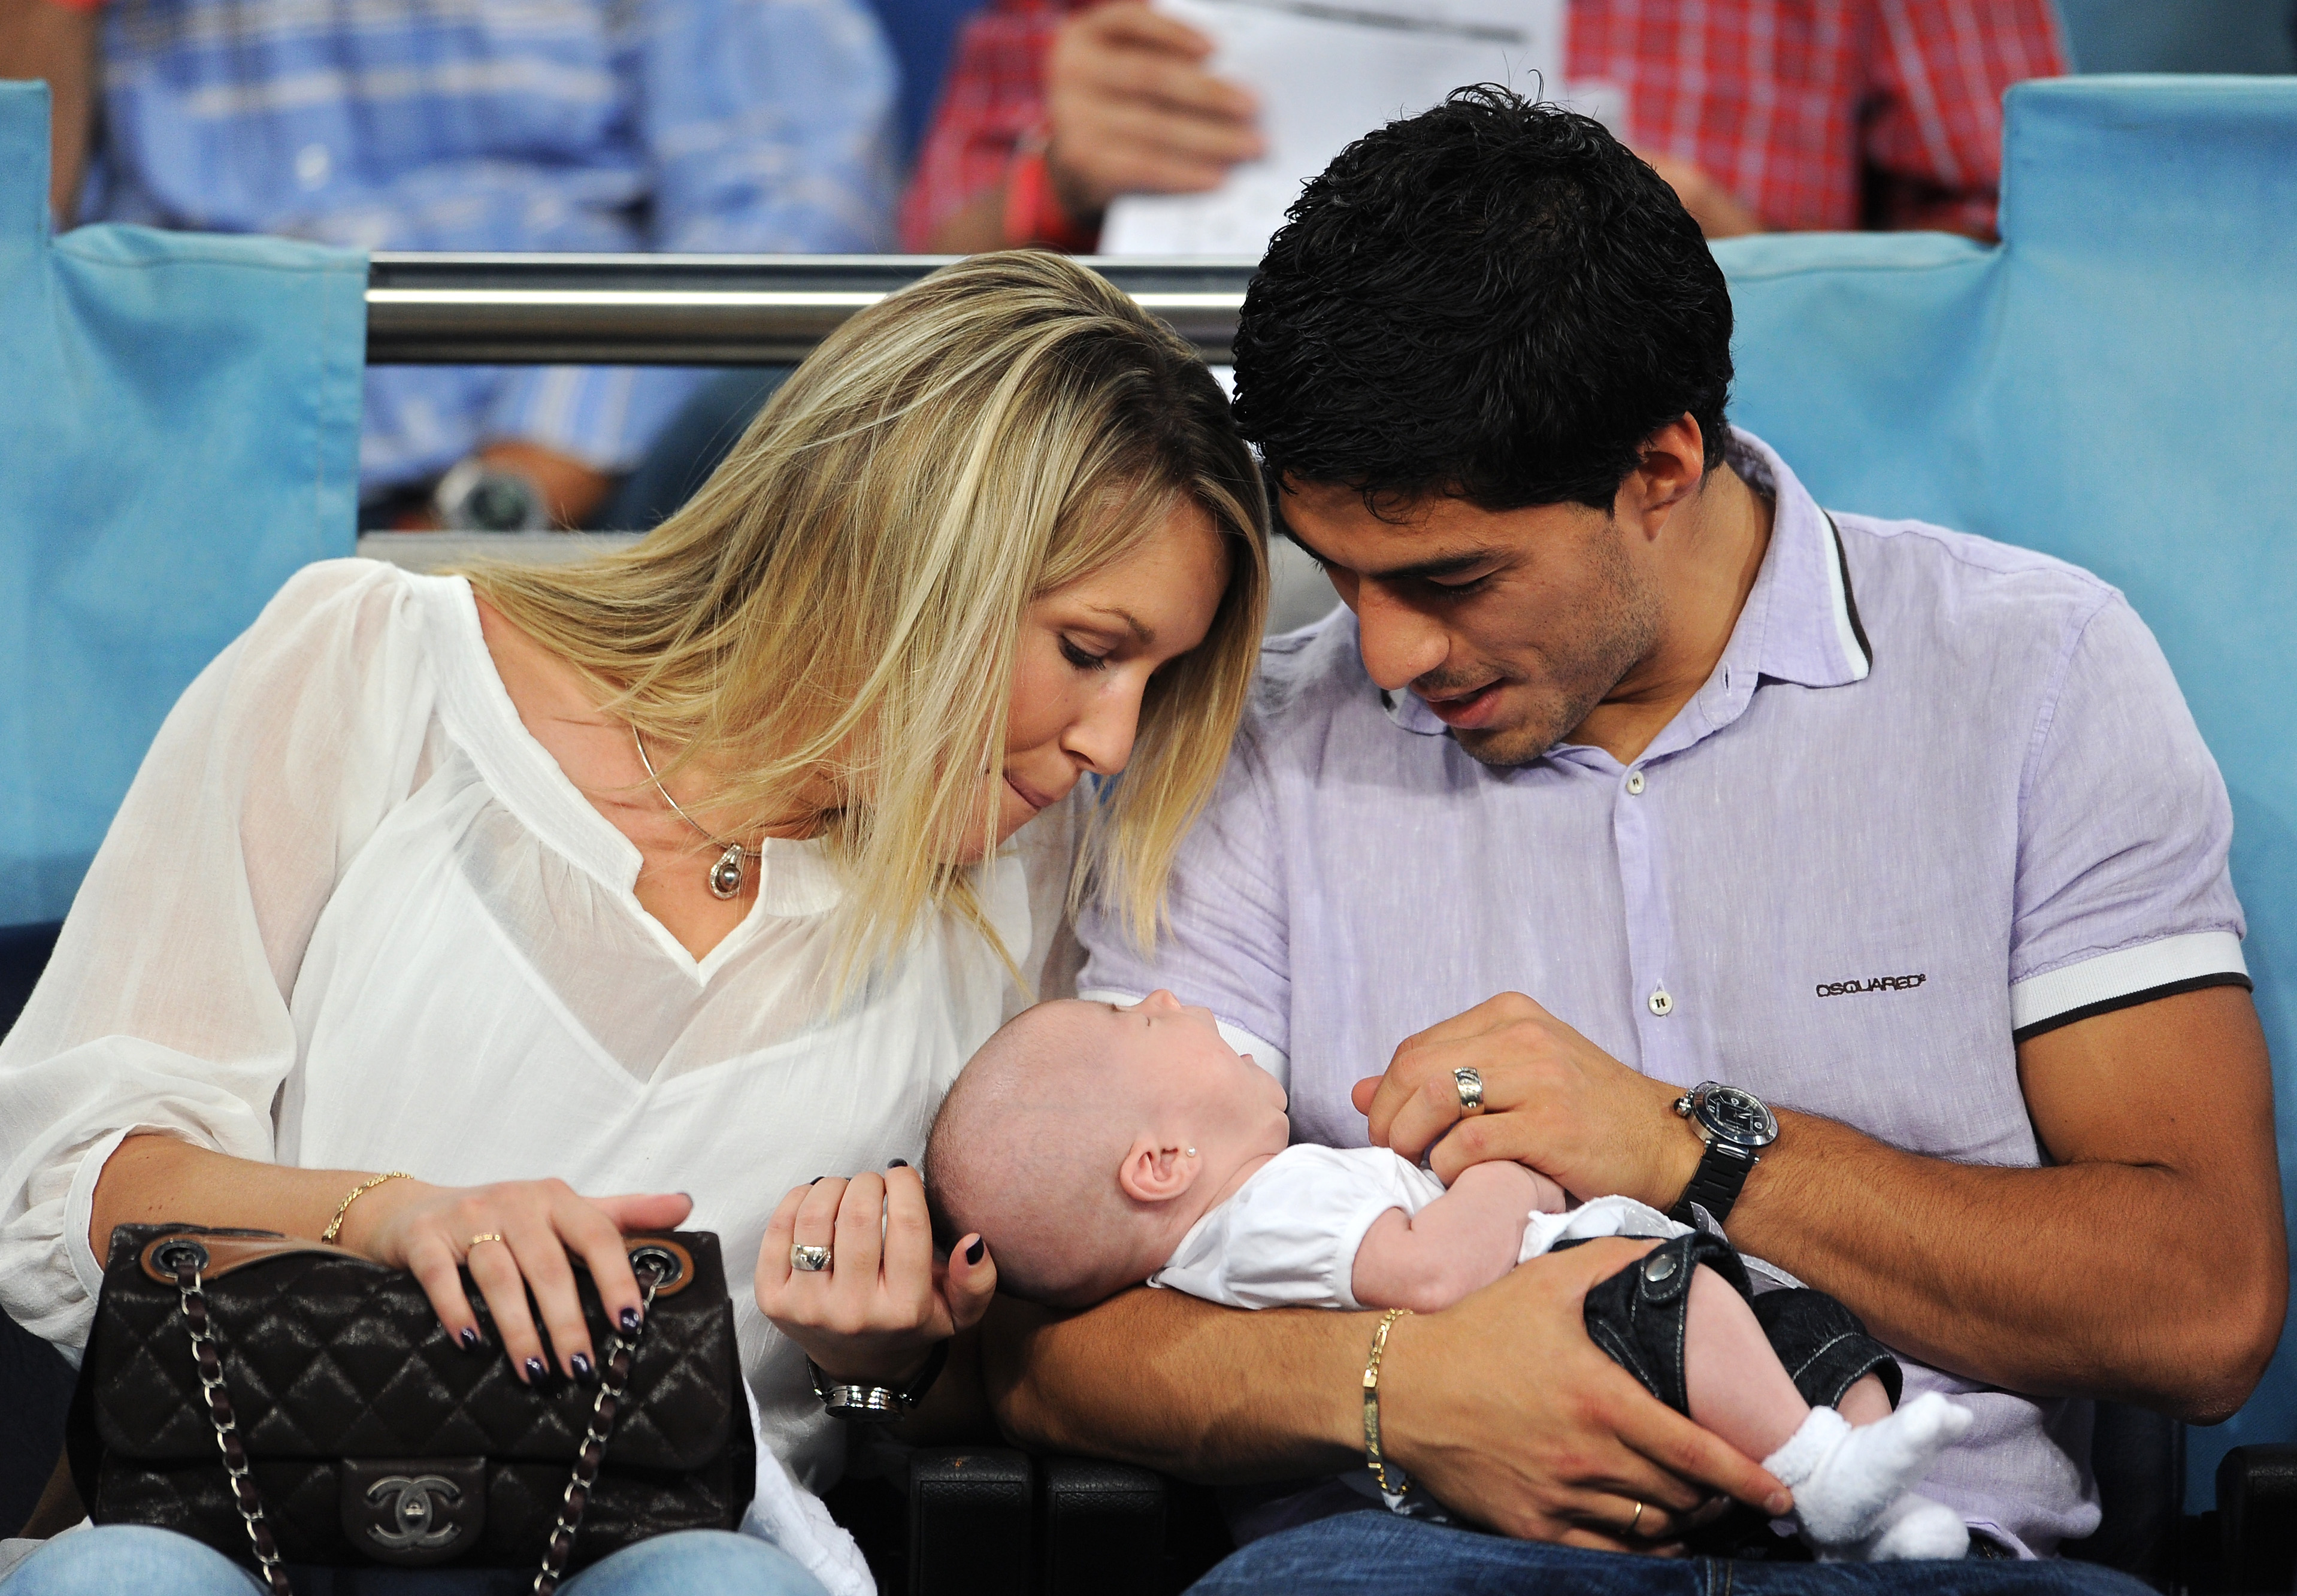 MADRID, SPAIN - SEPTEMBER 15: Expelled Ajax player Luis Suarez (R) hold his baby daughter Delfina while seated next to his wife Sofia prior to the start of the UEFA Champions League group G match between Real Madrid and Ajax at the Estadio Santiago Bernab